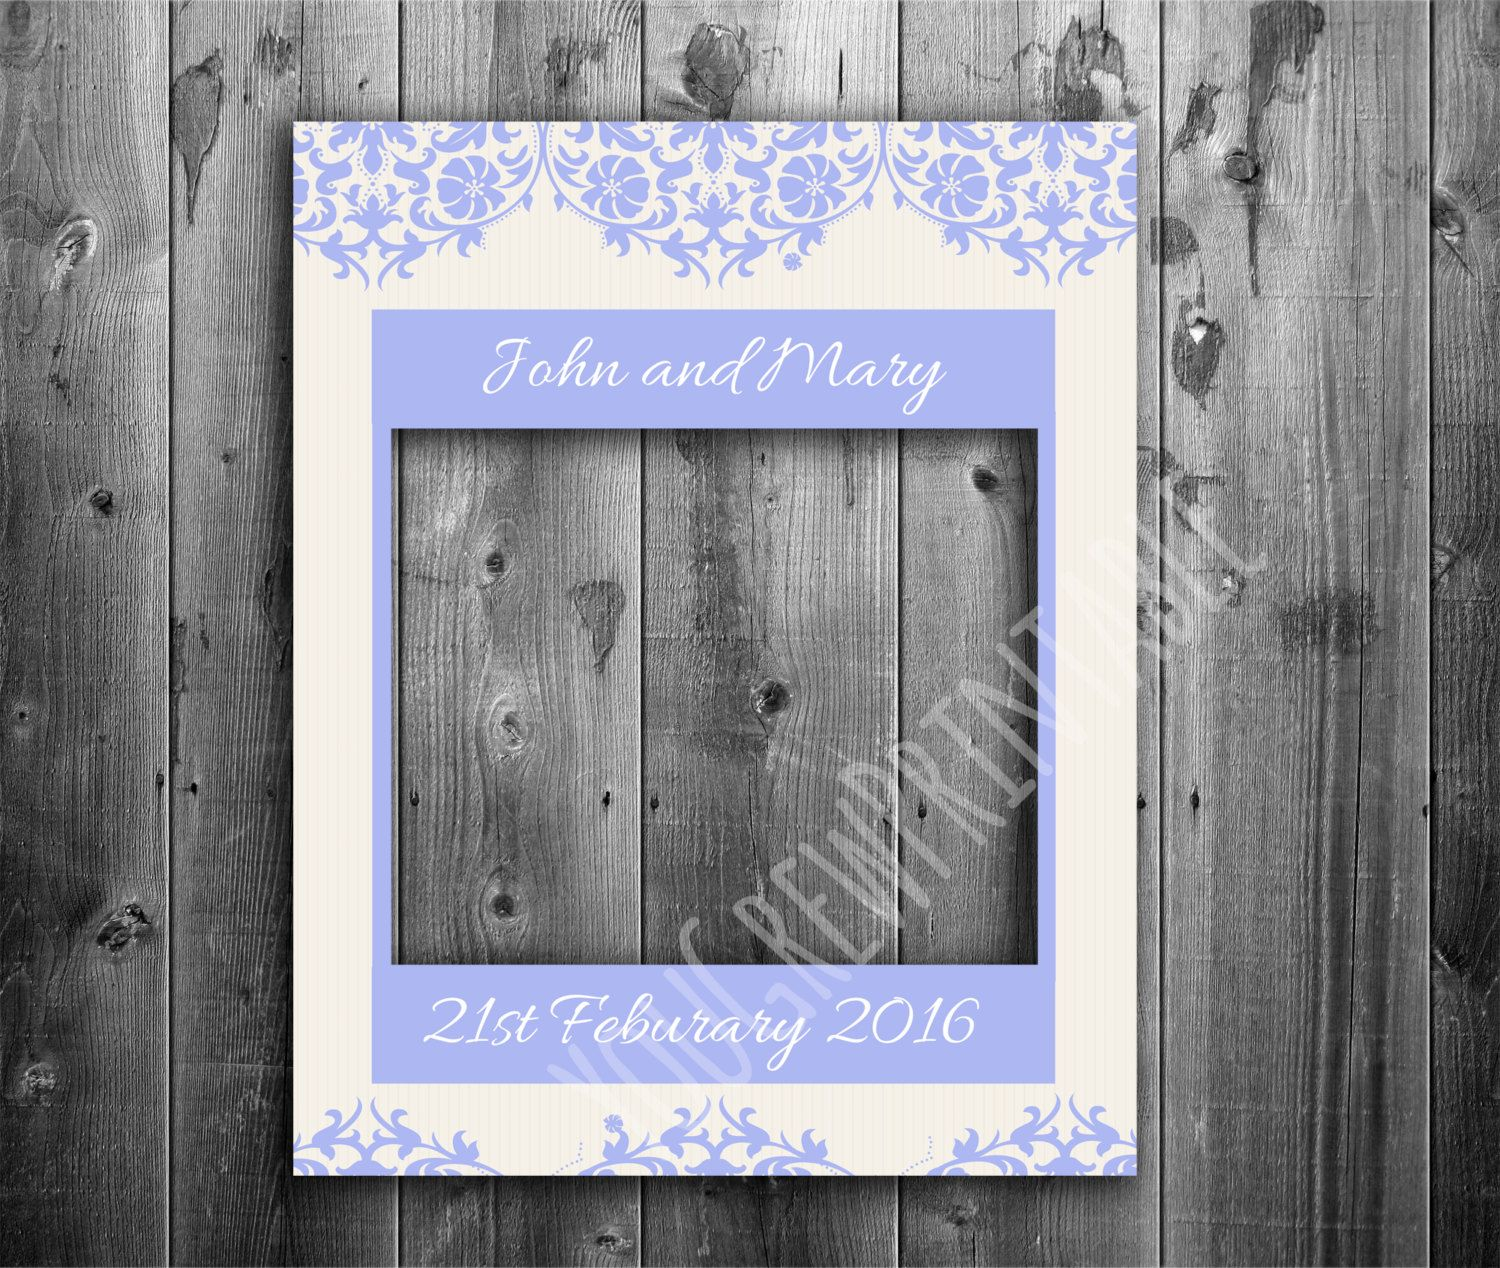 photo booth frame prop digital download wedding frame vintage wedding props selfie